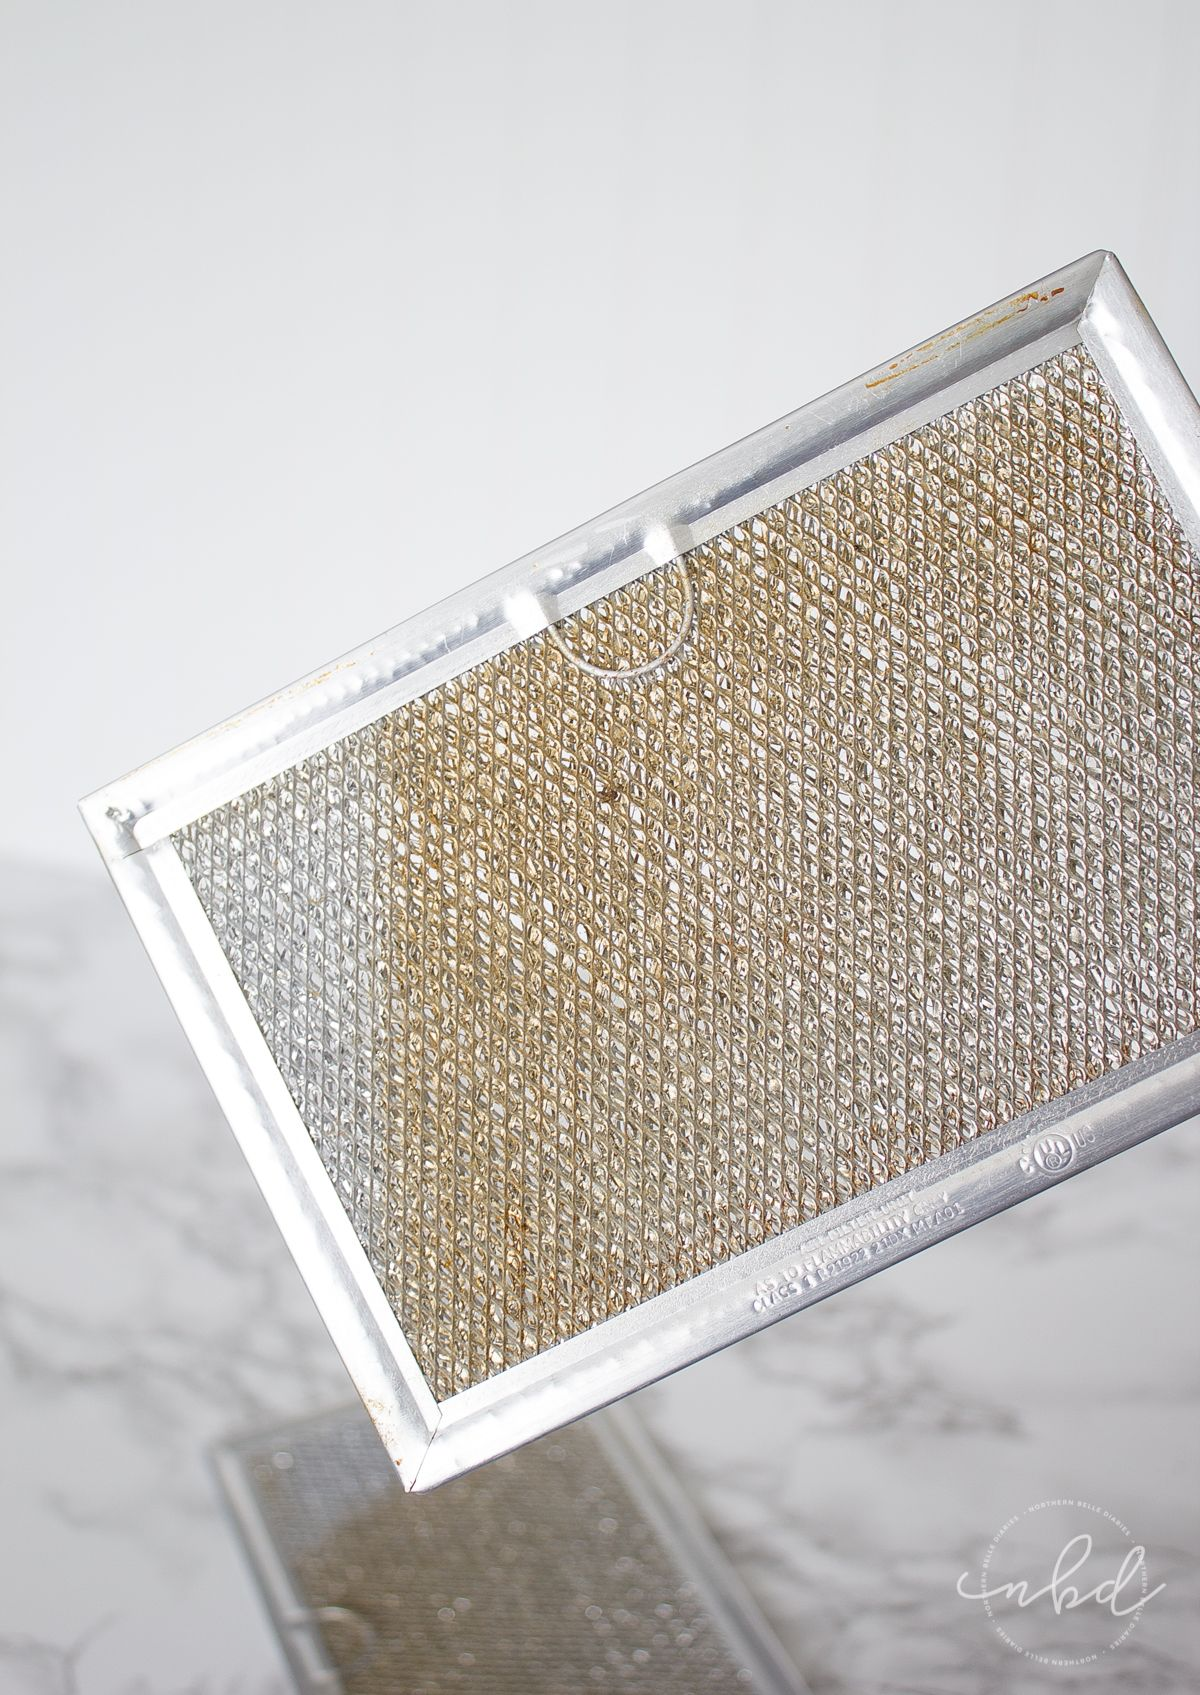 How To Clean A Greasy Range Hood Filter Without Scrubbing Cleaning Hacks House Cleaning Tips Deep Cleaning Tips